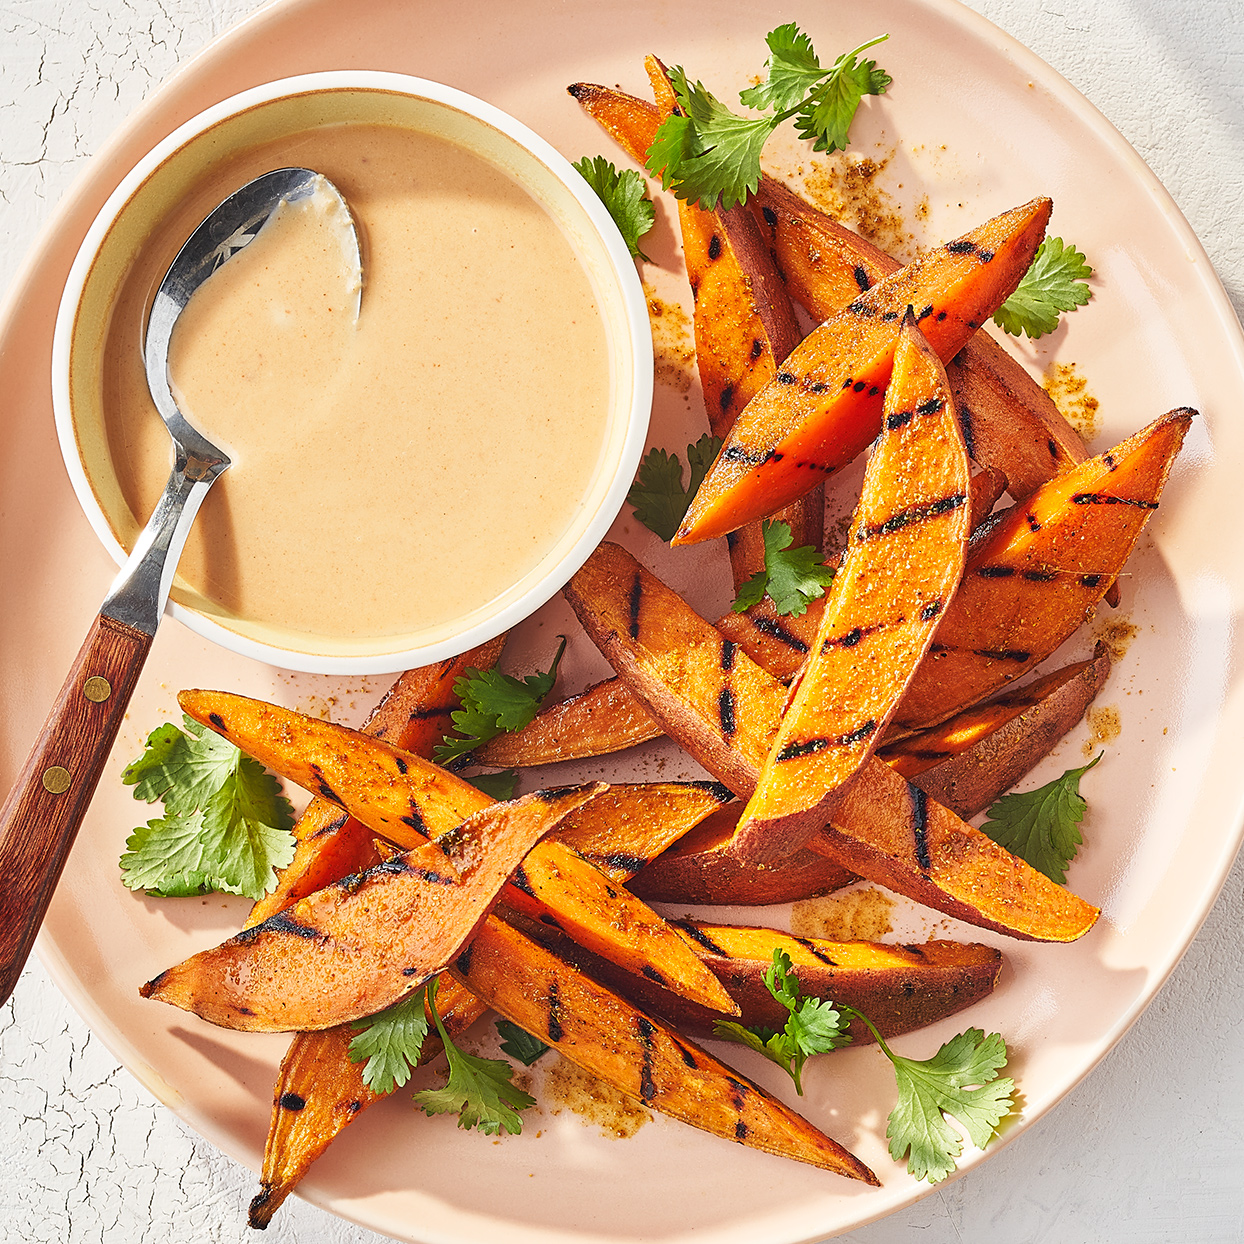 Grilled Sweet Potato Wedges with Peanut Sauce